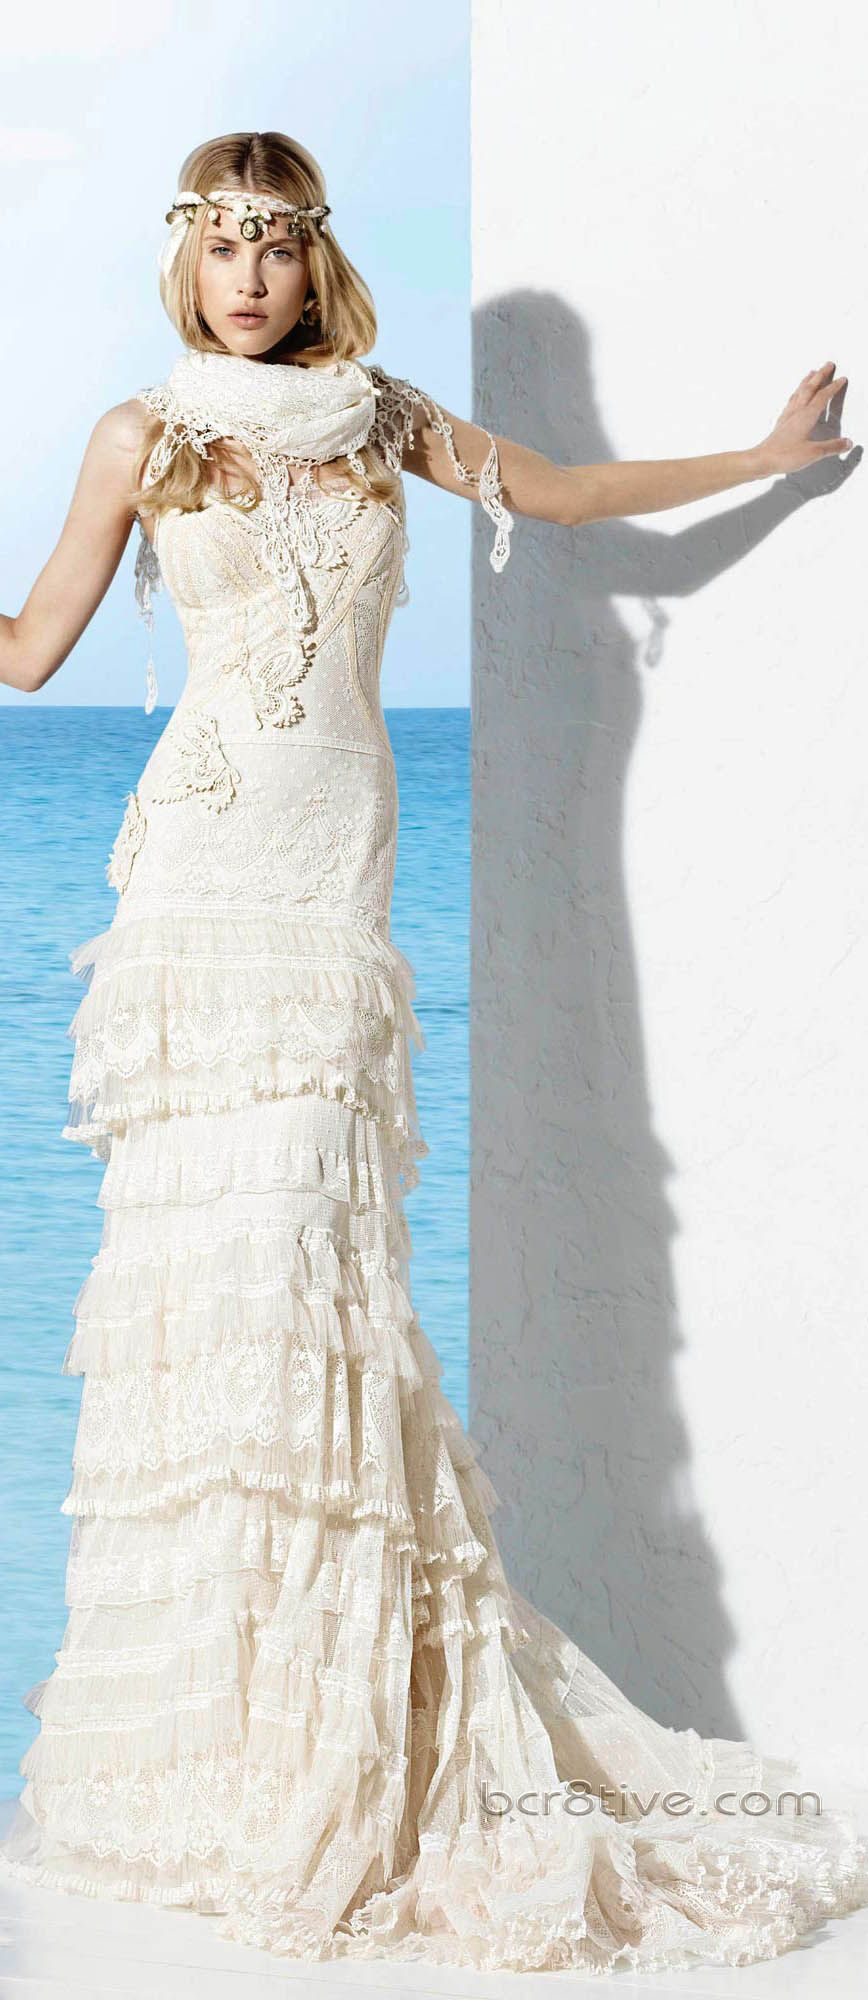 Yolan Cris 2013 Ibiza Bridal Collection | Bridal collection, Ibiza ...